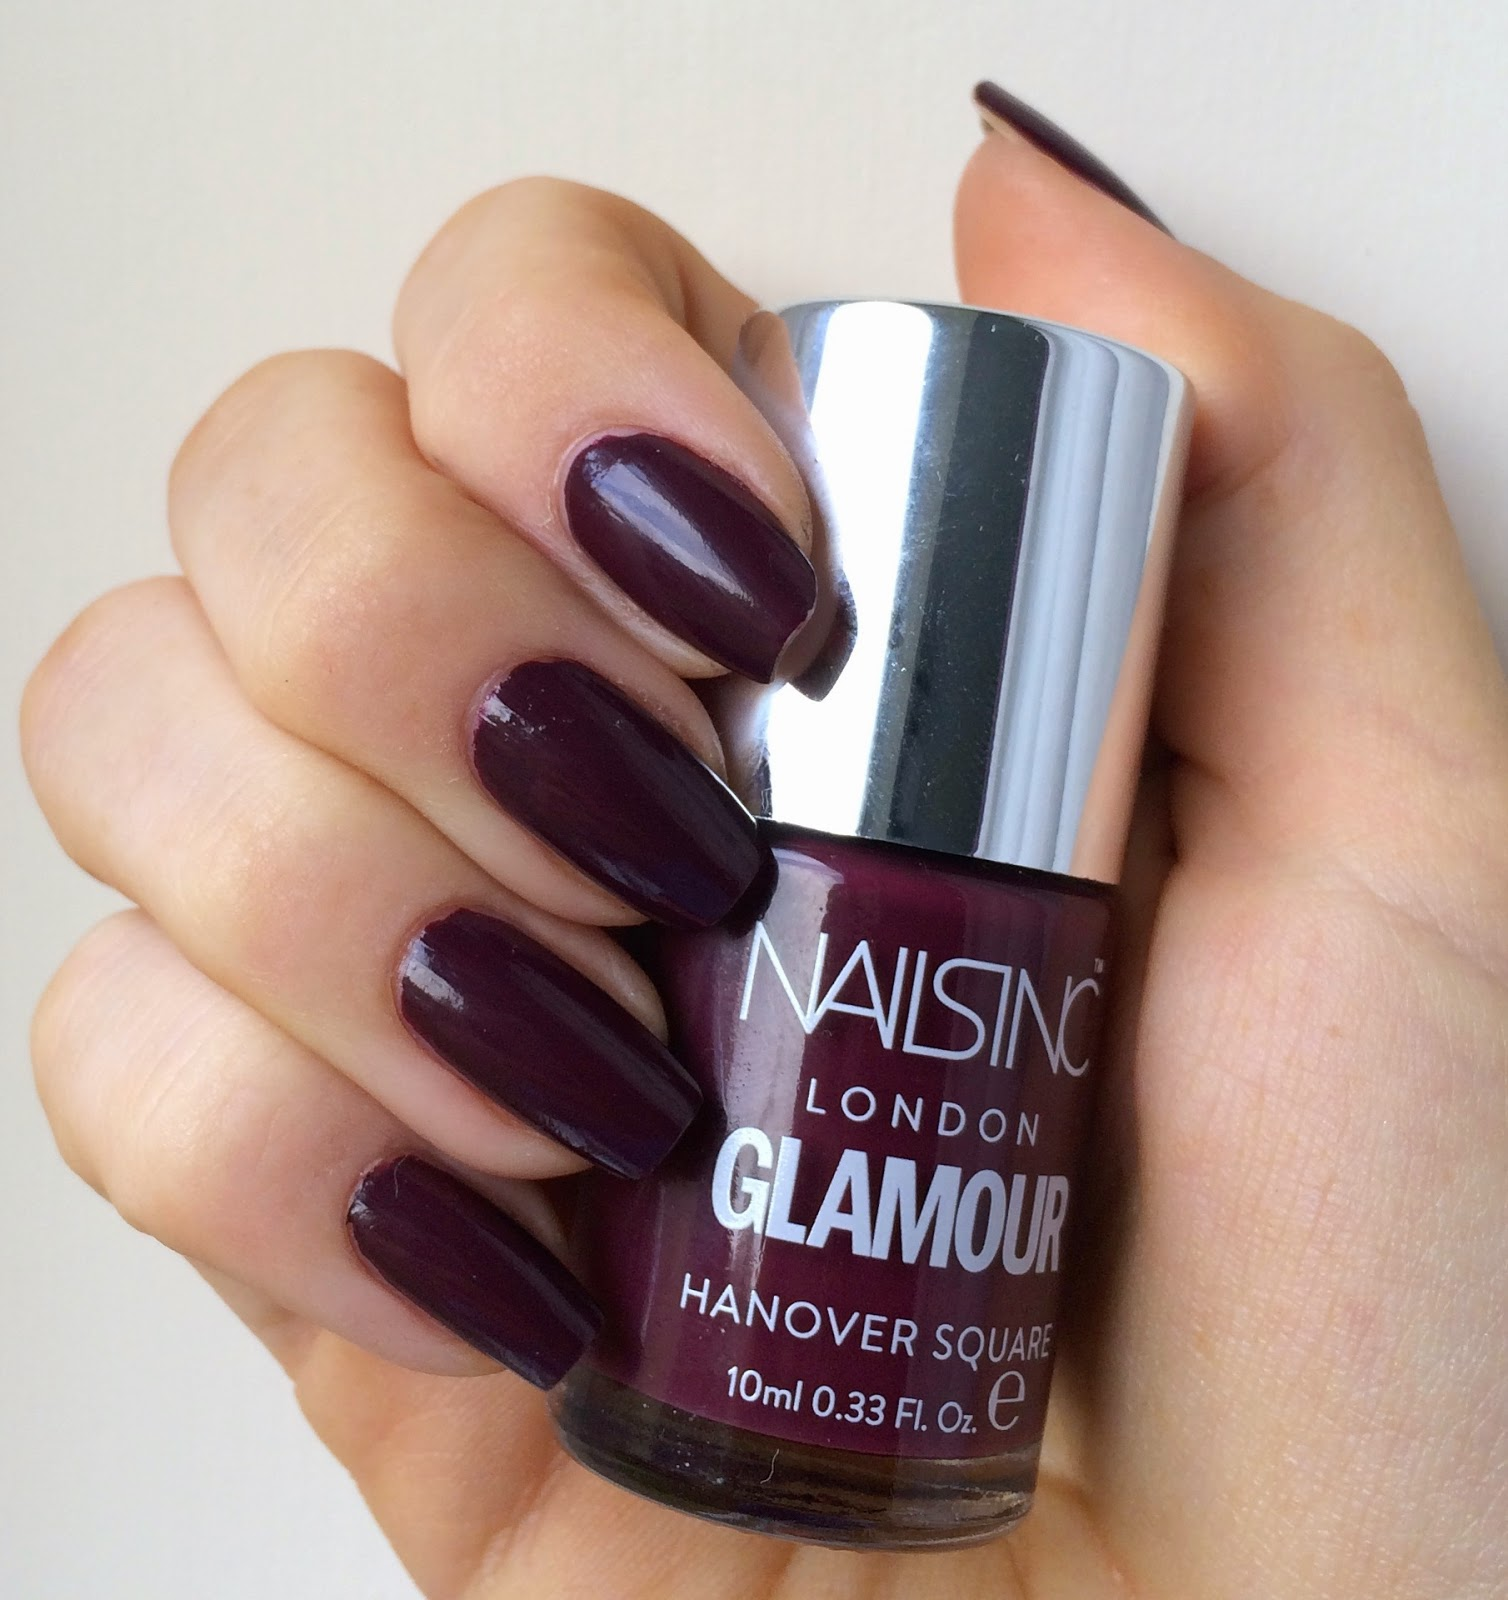 Photo -Jenn- ic: Free Nails Inc Polish With Glamour Magazine